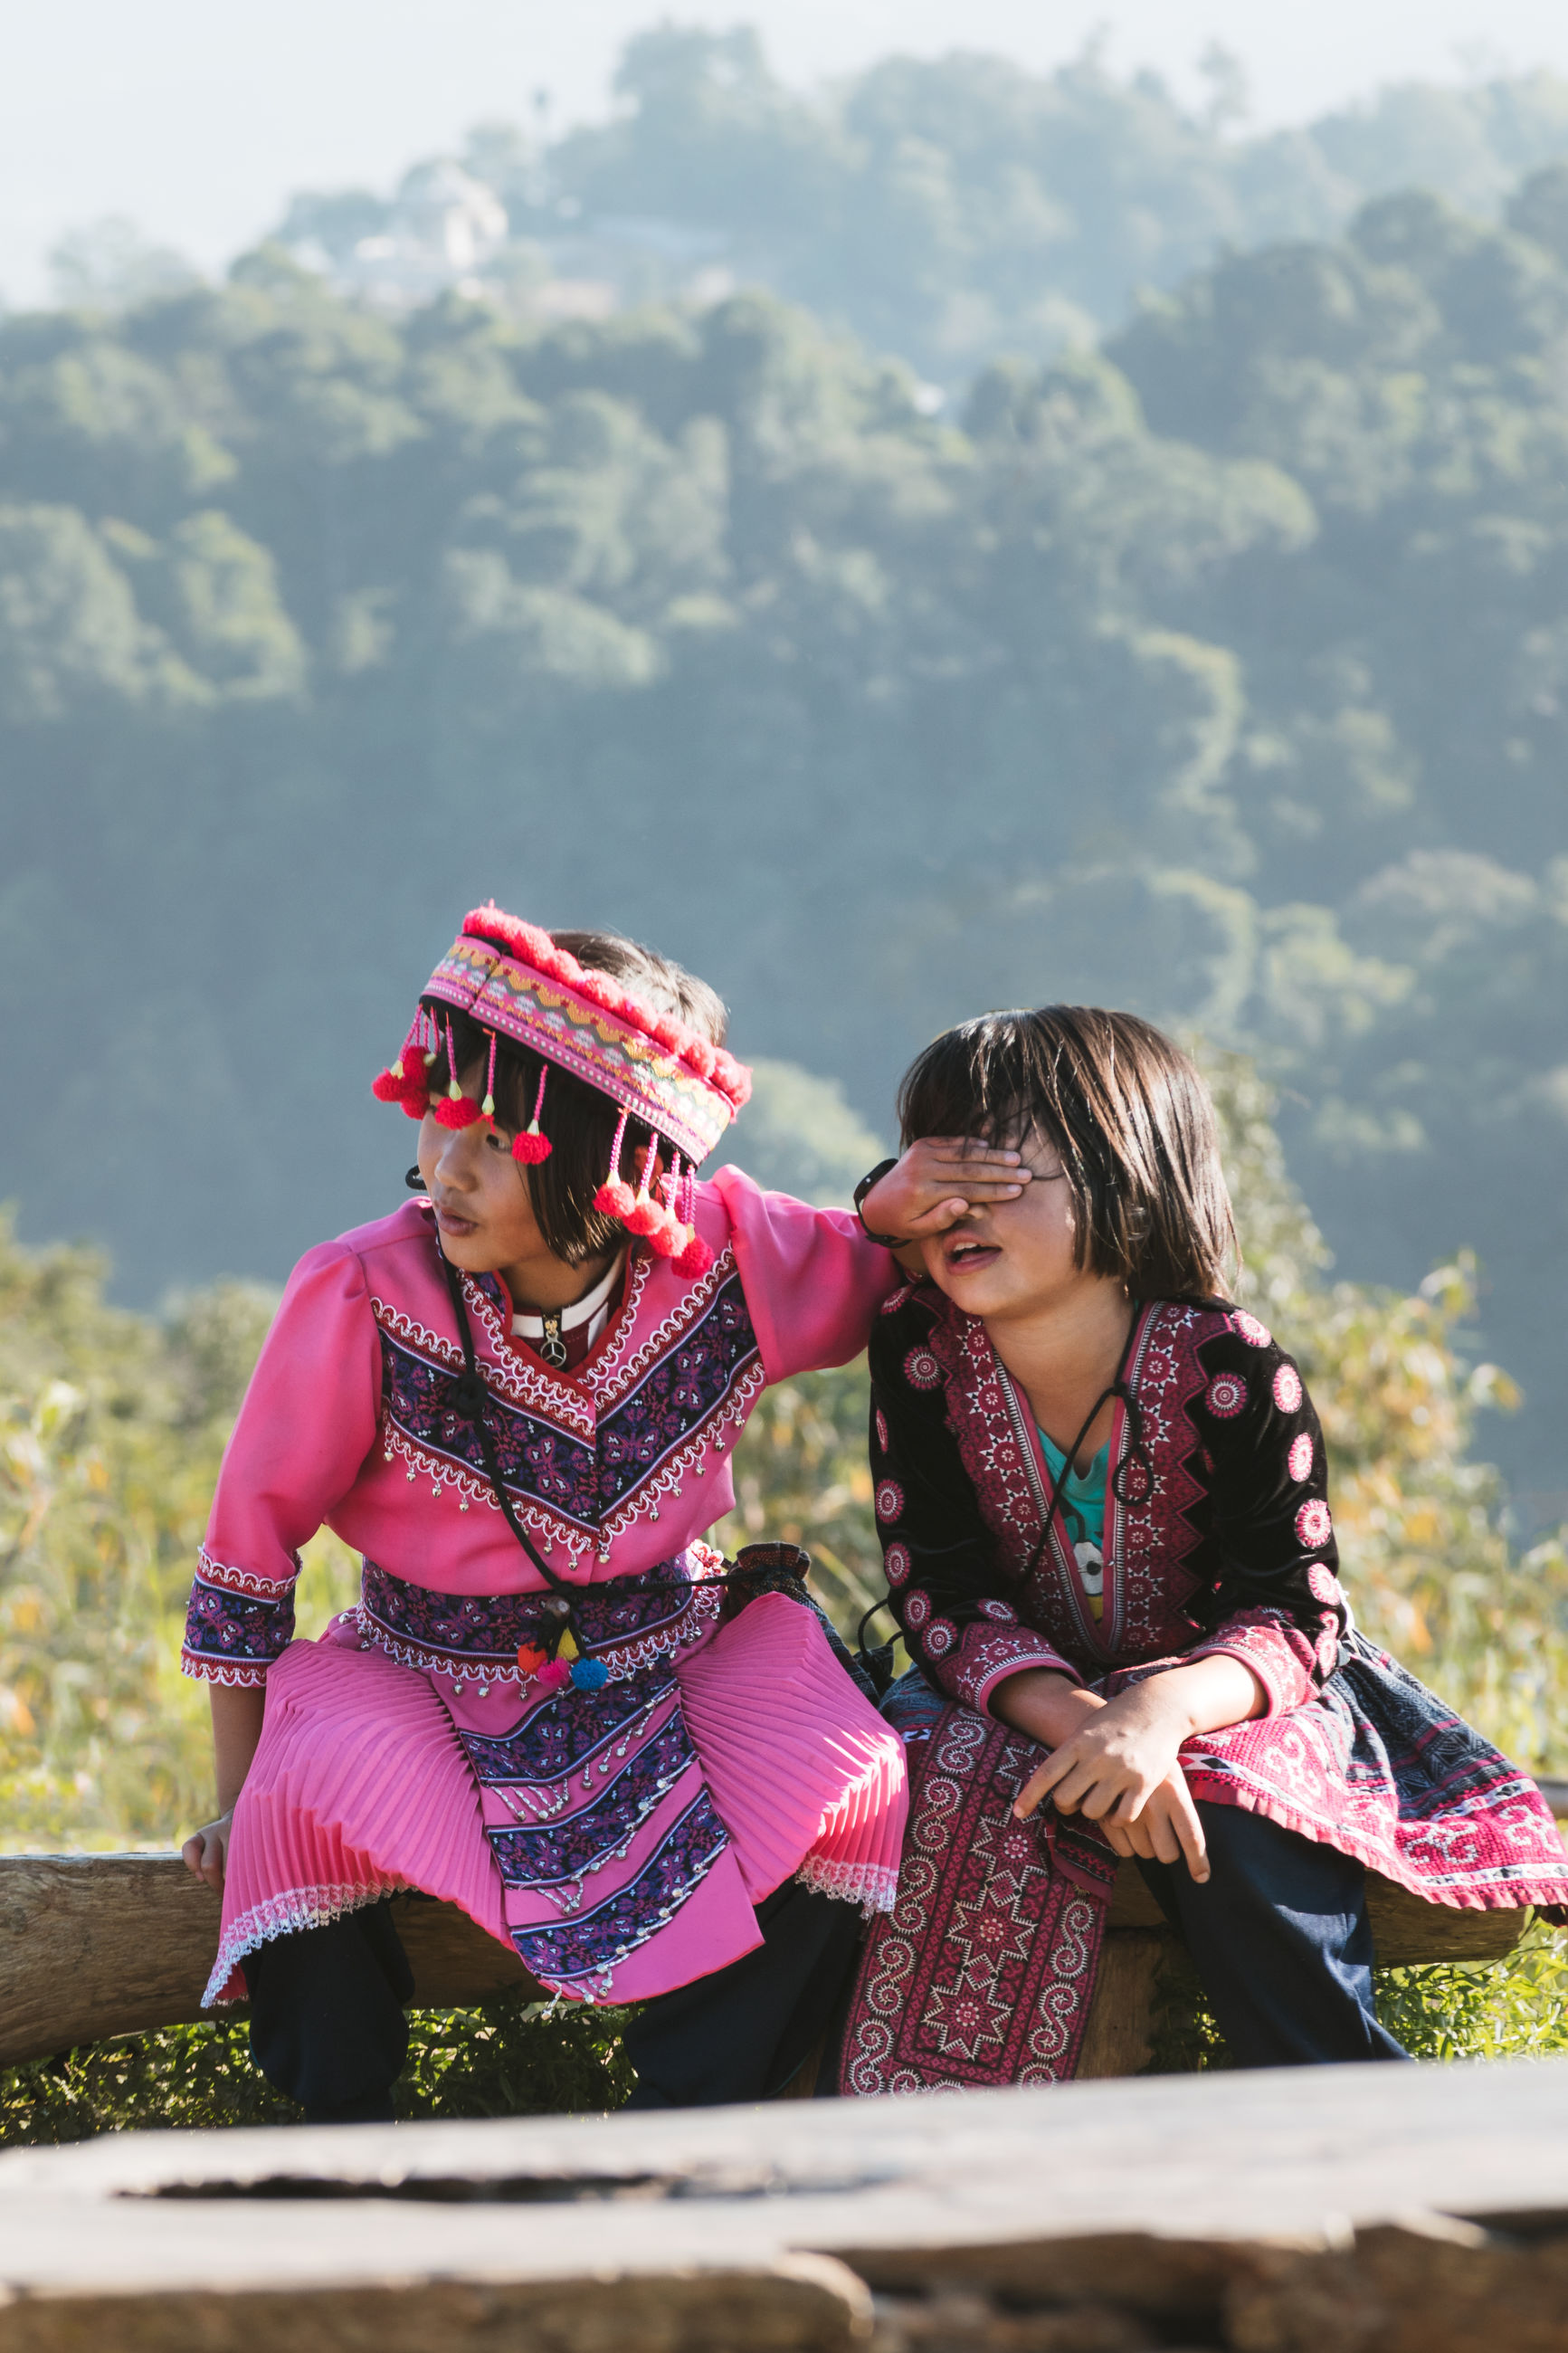 women, real people, leisure activity, two people, togetherness, lifestyles, females, mountain, adult, sitting, girls, people, bonding, nature, clothing, traditional clothing, day, child, plant, childhood, outdoors, sister, daughter